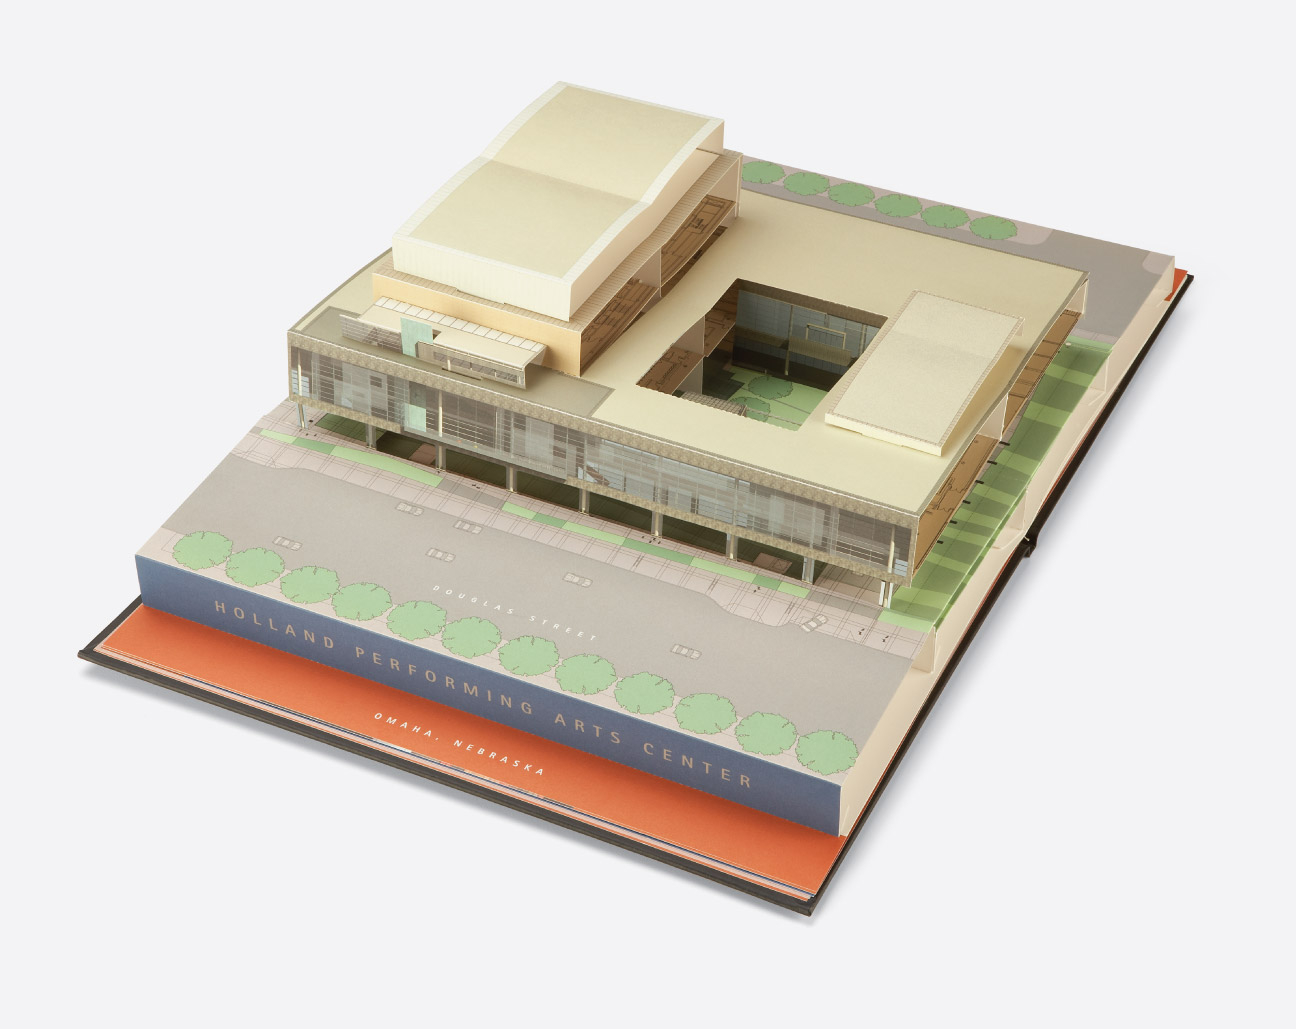 Holland Performing Arts Commemorative Pop Up Book